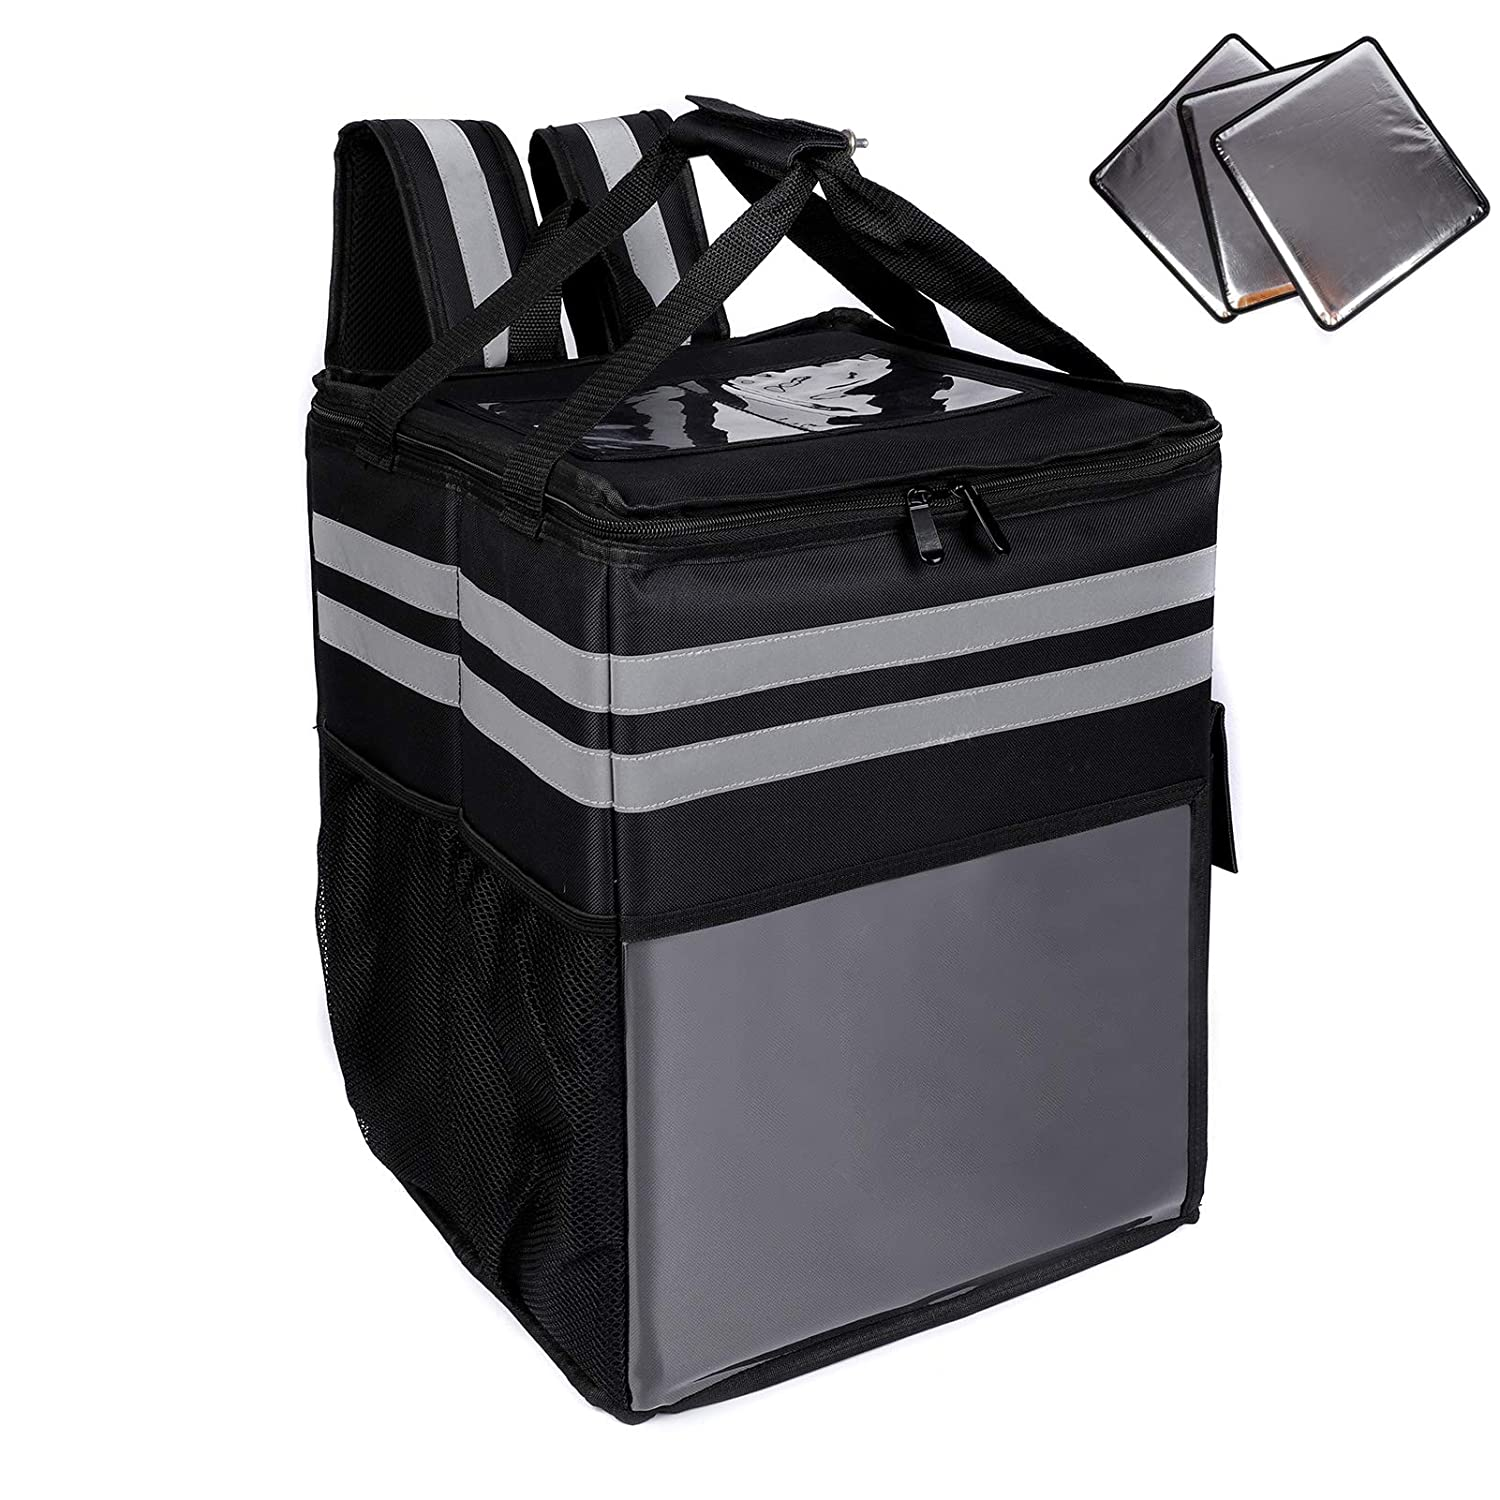 Insulated Pizza Delivery Bag, Food Delivery Backpack, Leak-Proof Thermal Backpack,Soft Sided Cooler Grocery Backpack